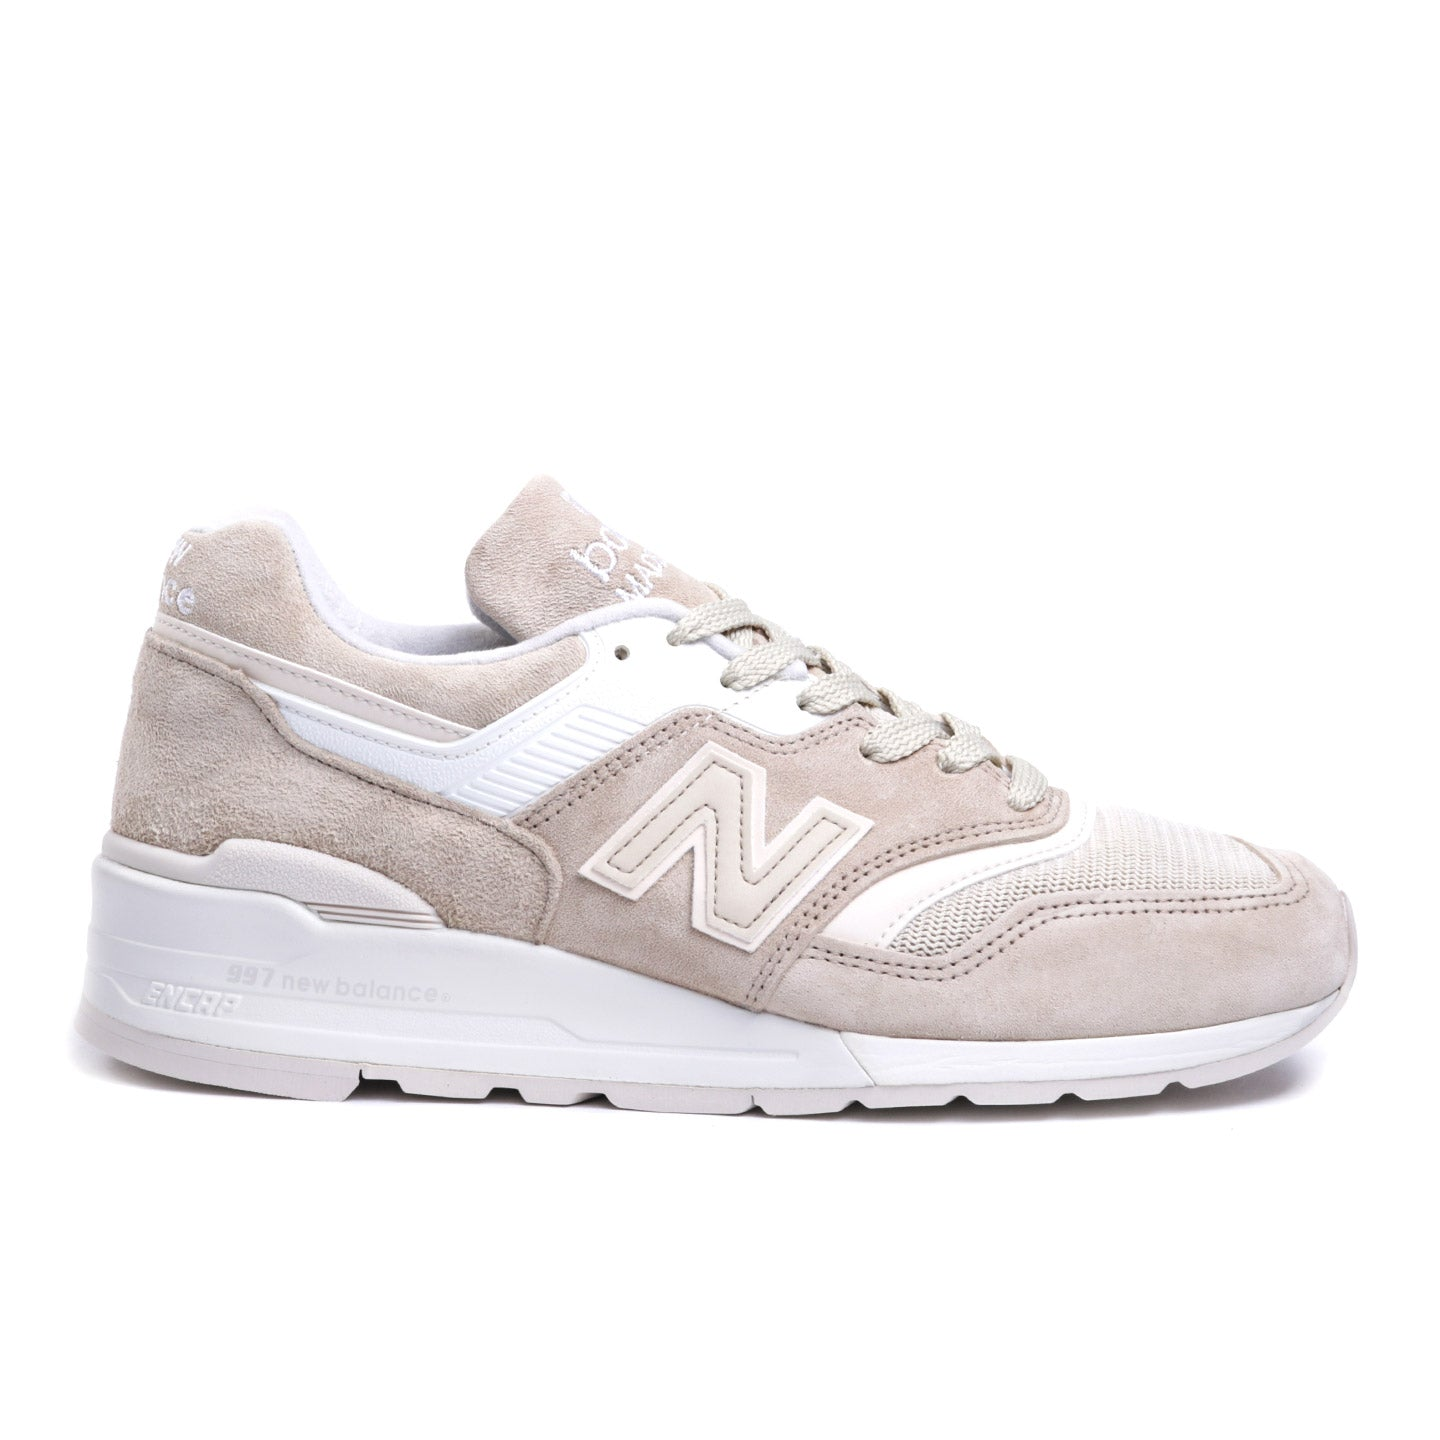 NEW BALANCE 997 MIUSA TAN / WHITE